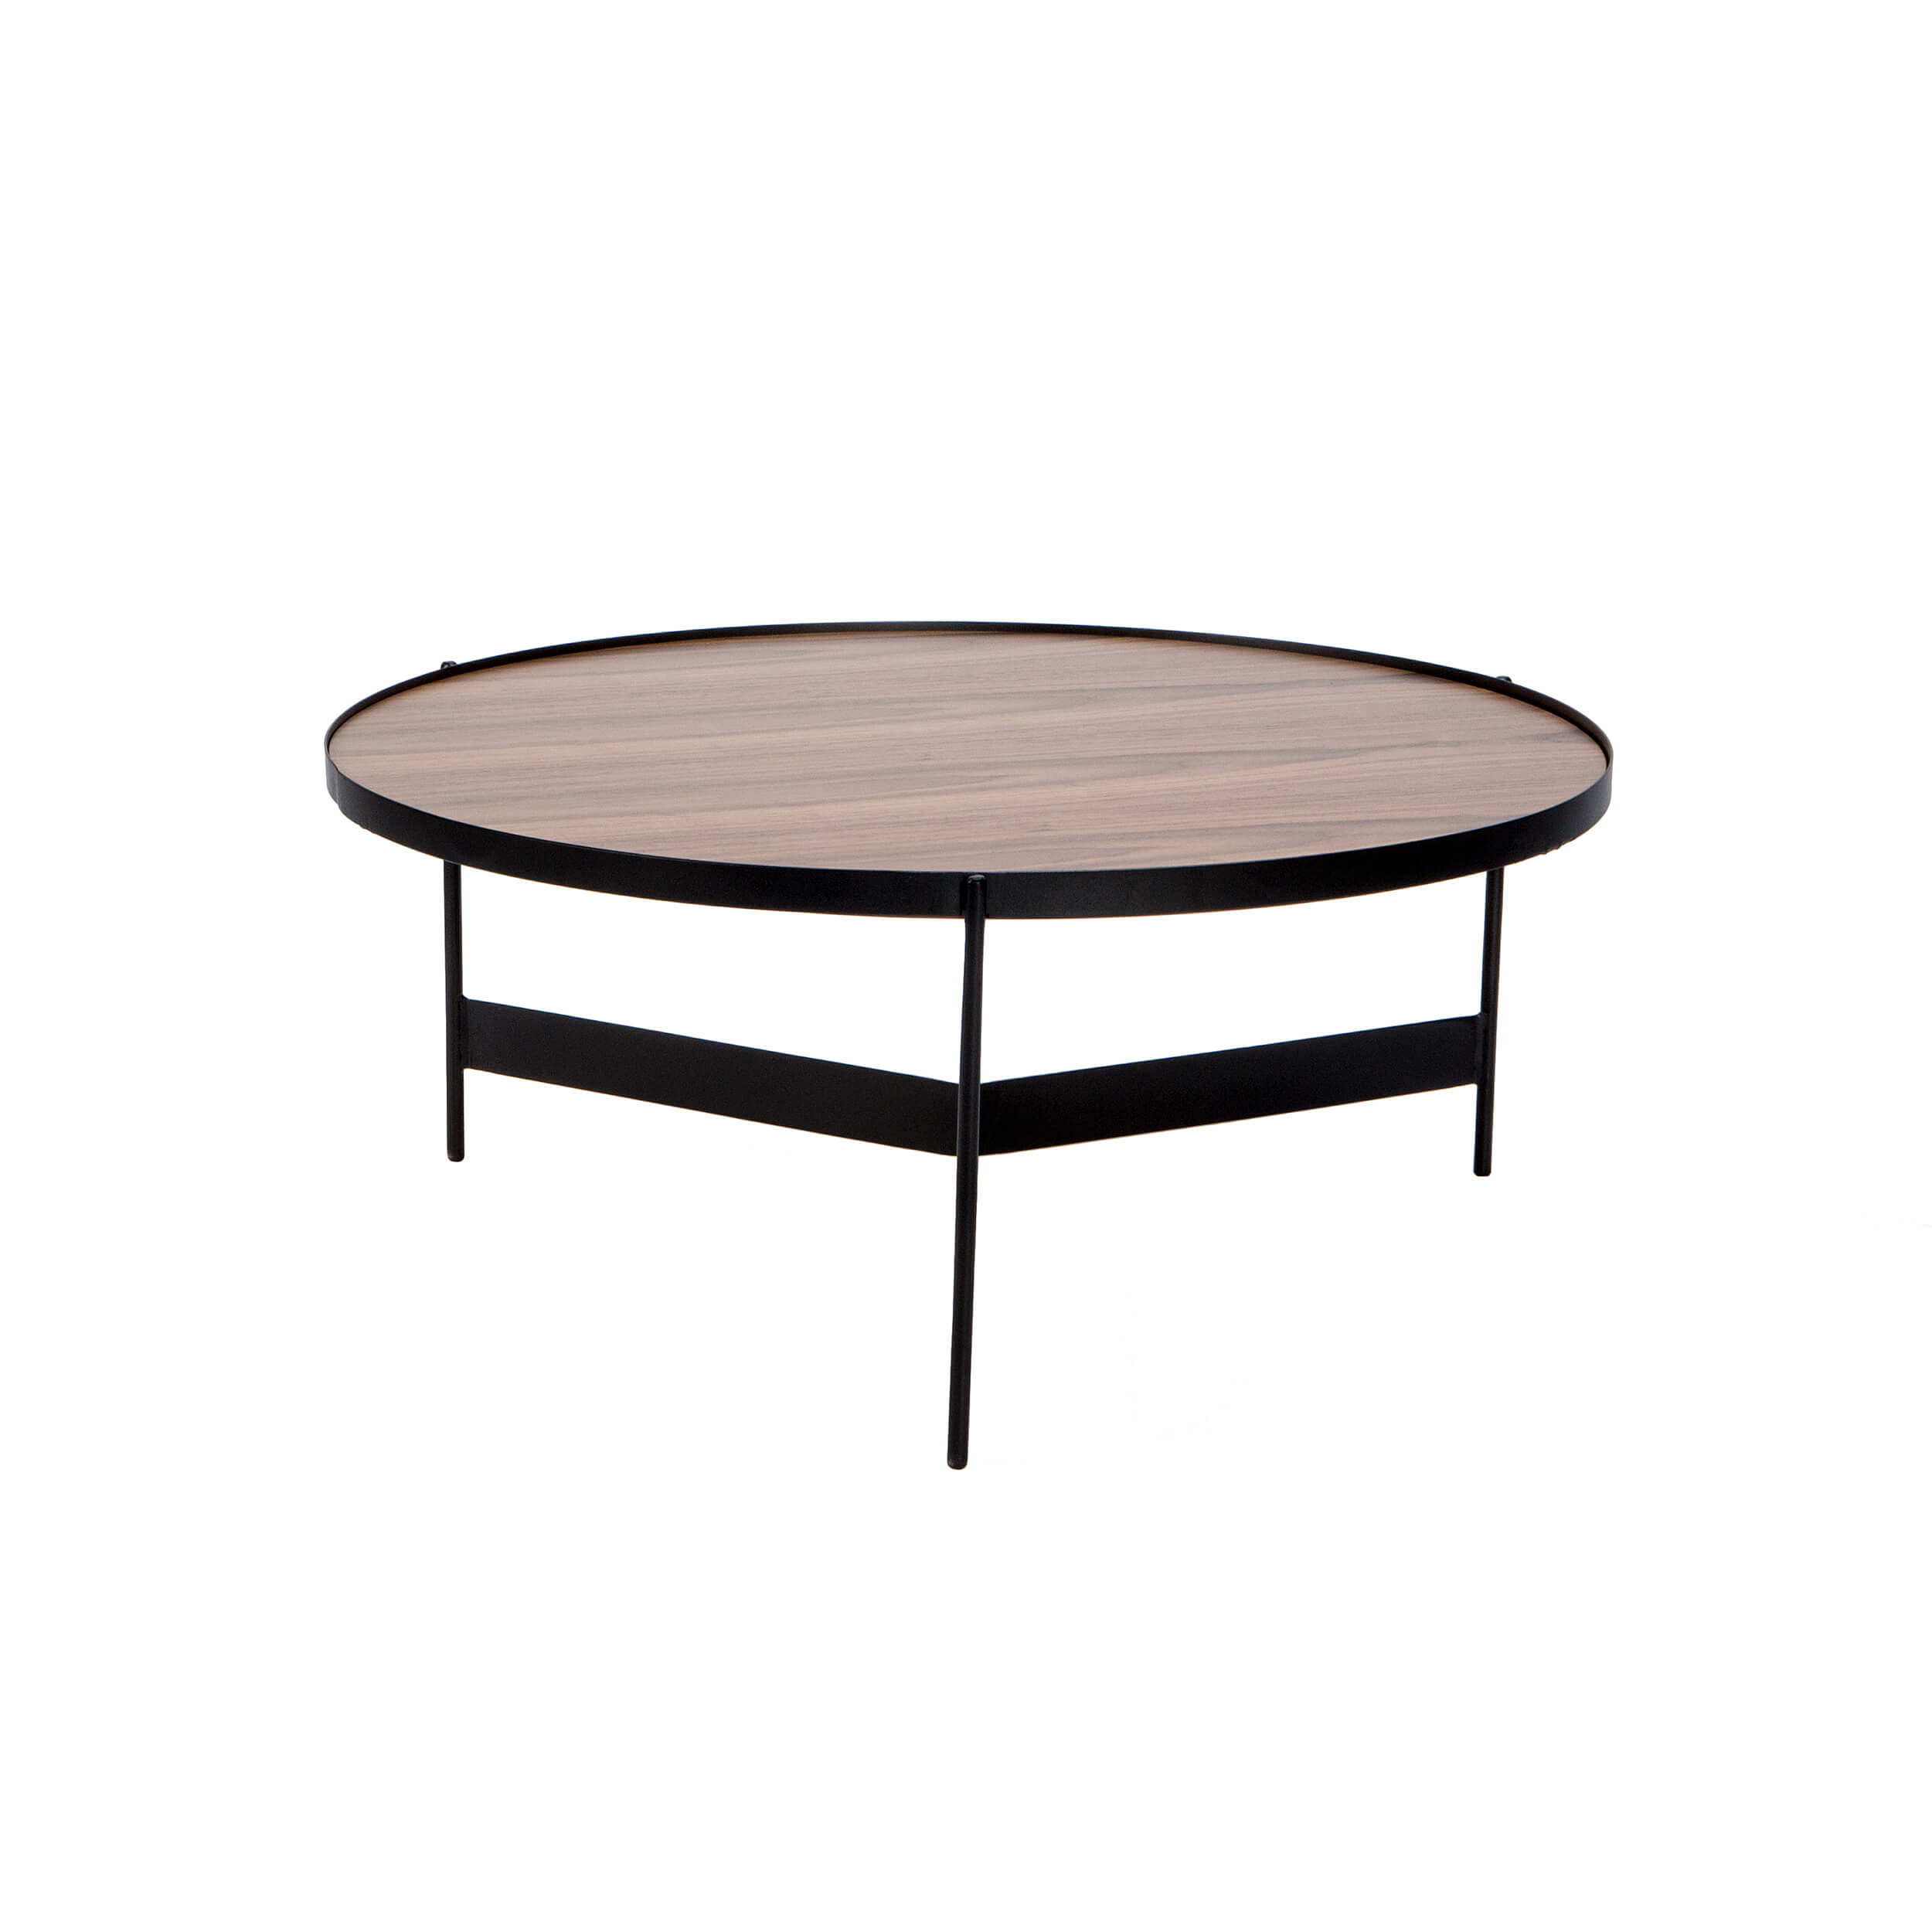 Tripod Coffee Table With Metal Legs Black Felix Zillo Hutch within size 2500 X 2500